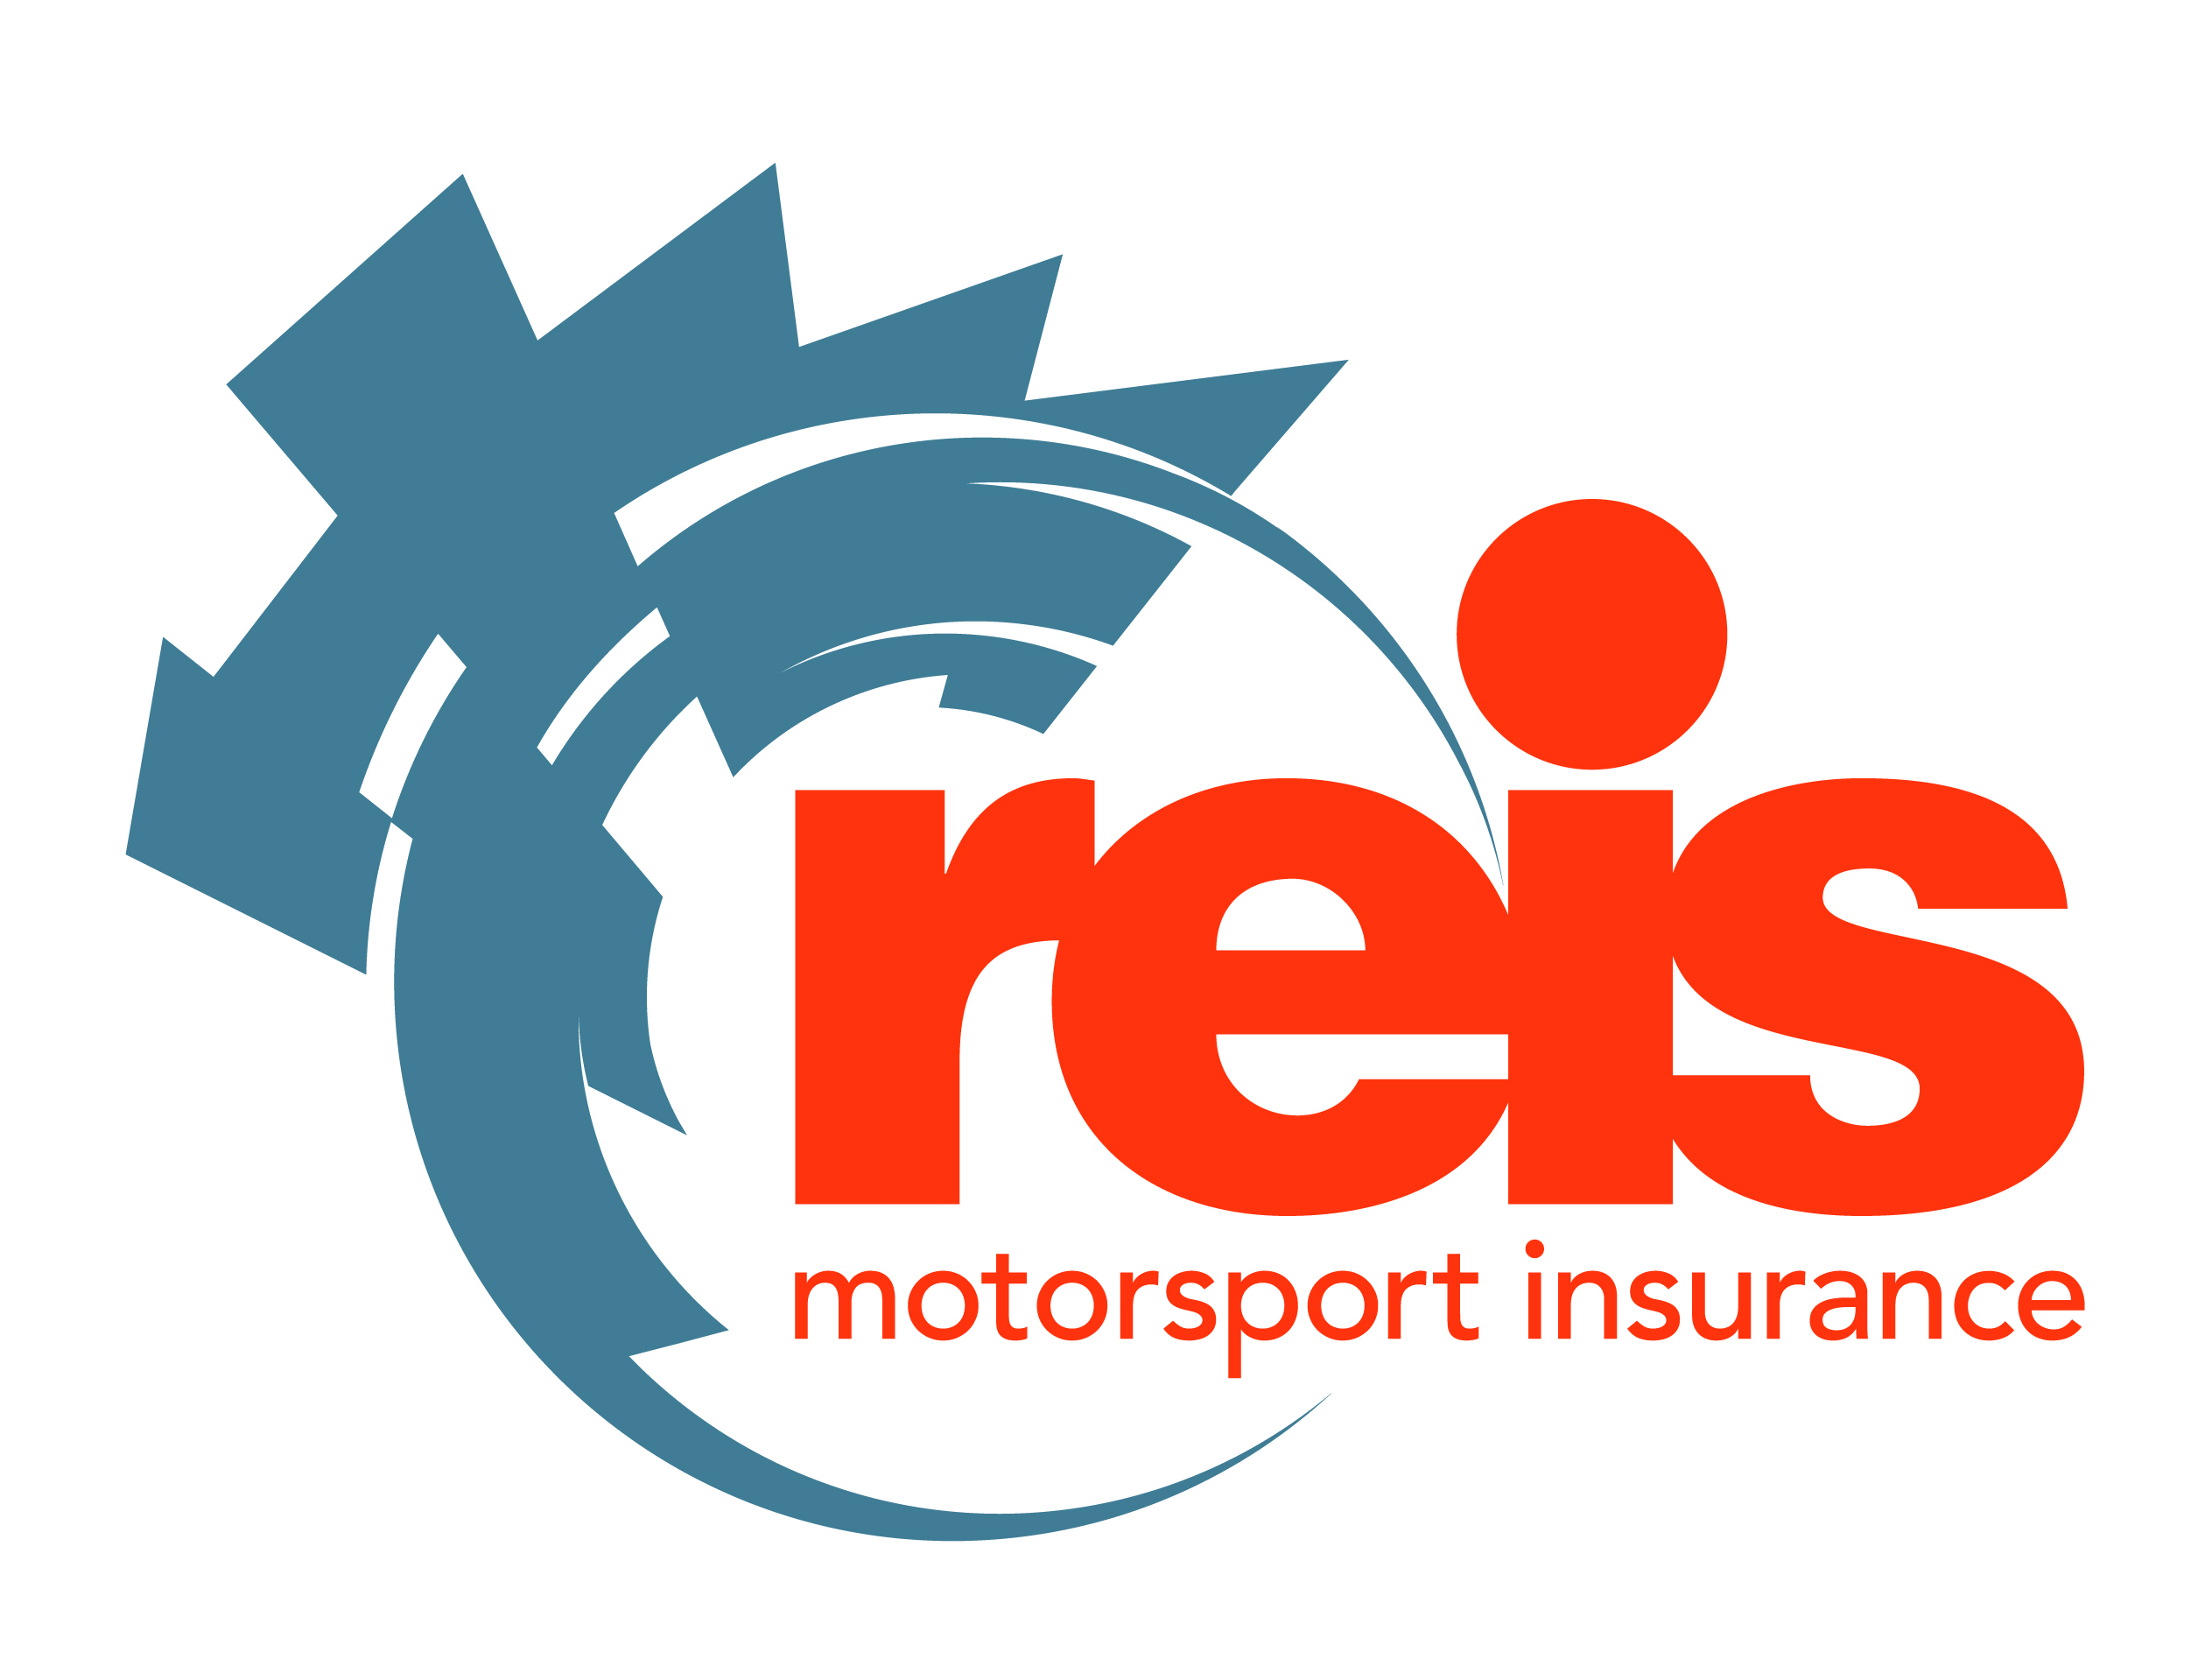 Reis Motorsport Insurance partners Allianz Global Corporate Specialty